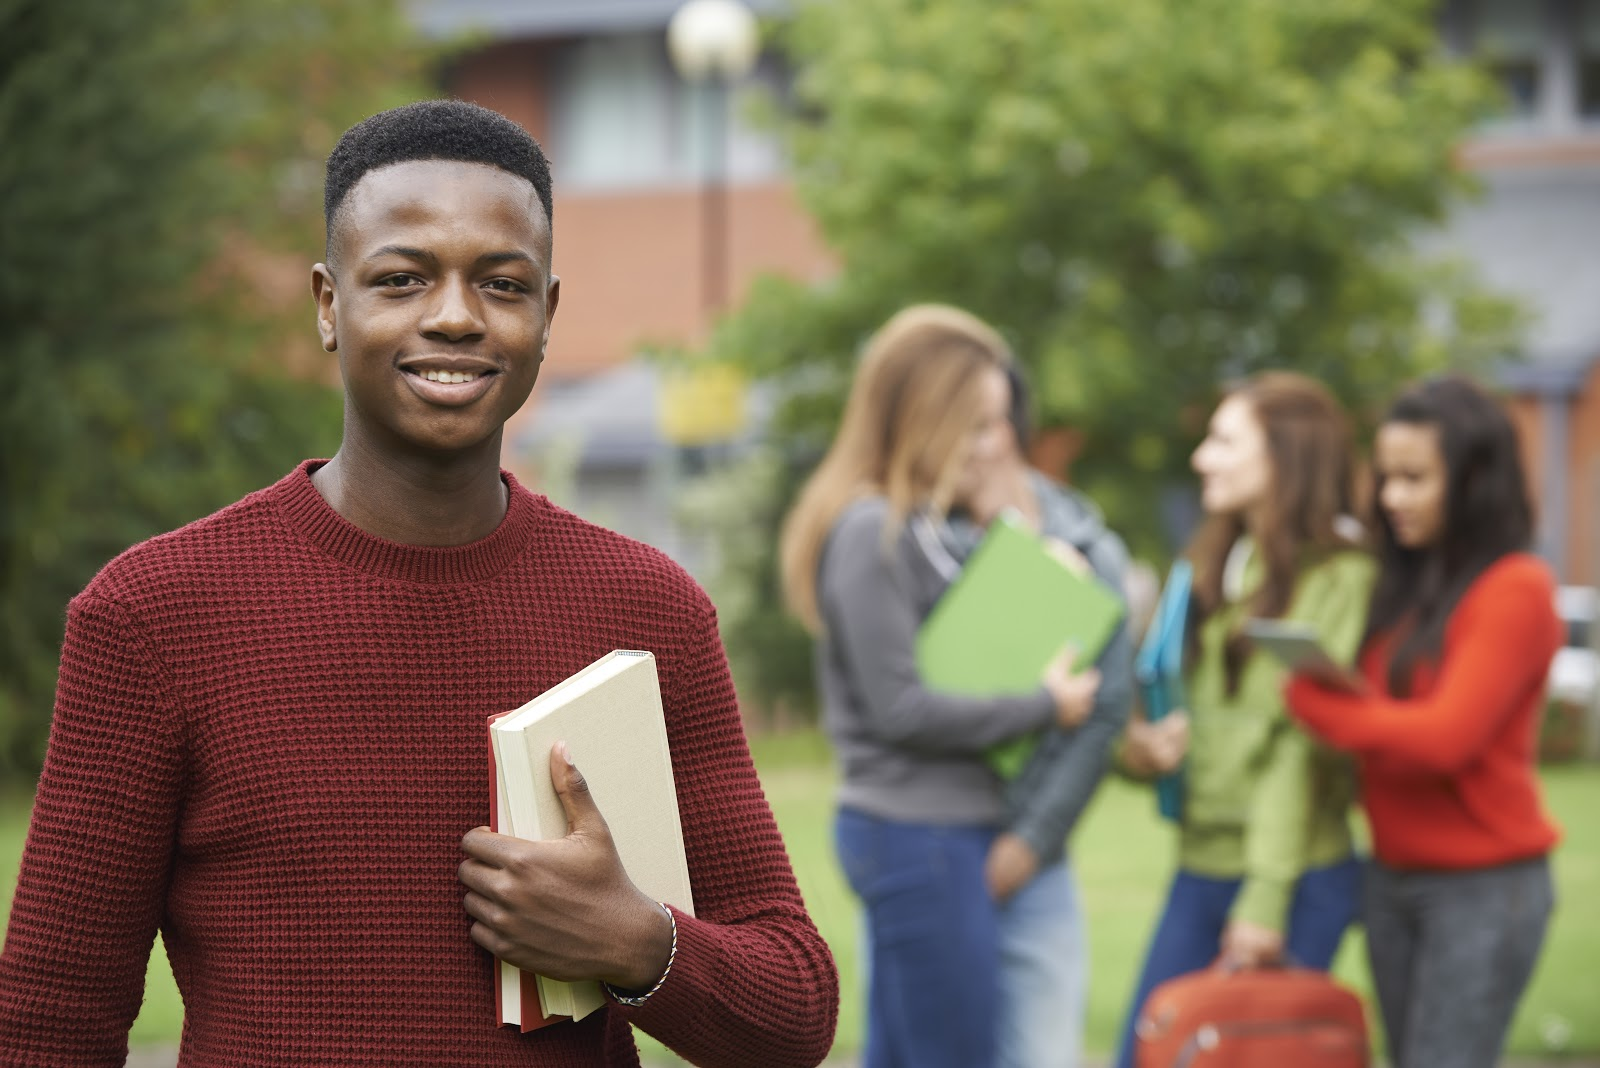 man smiling and holding a book